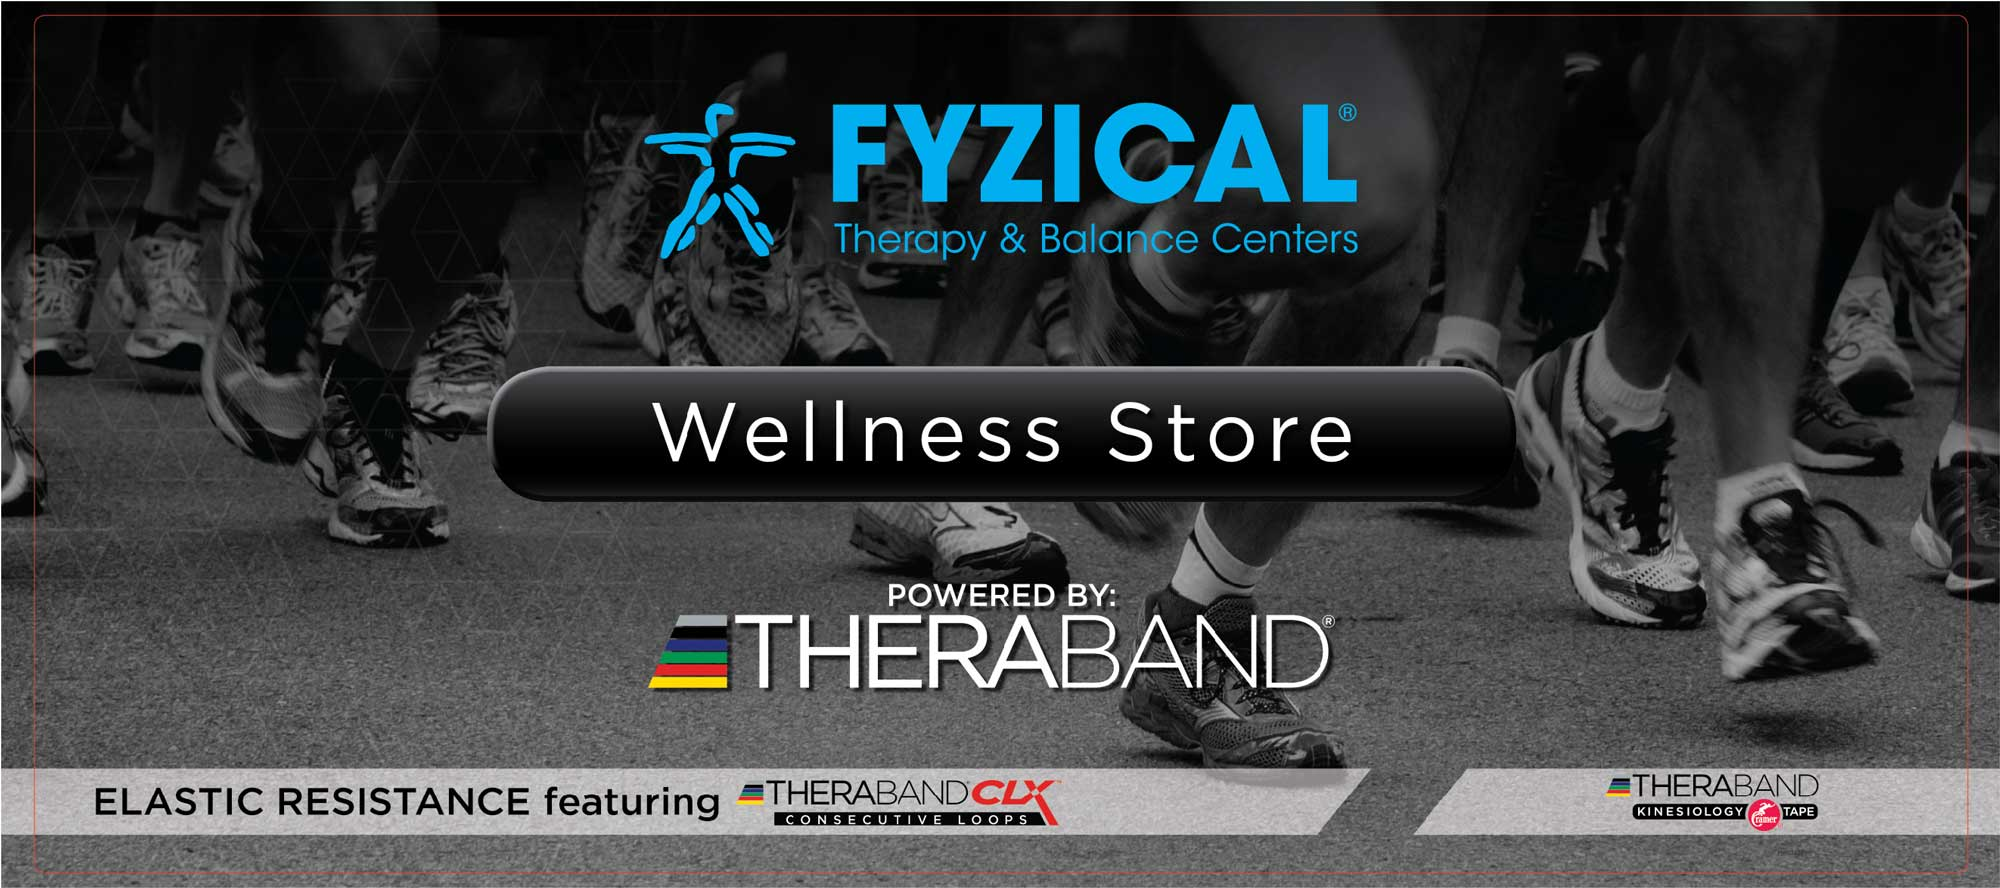 FYZICAL Wellness Store Powered by Theraband